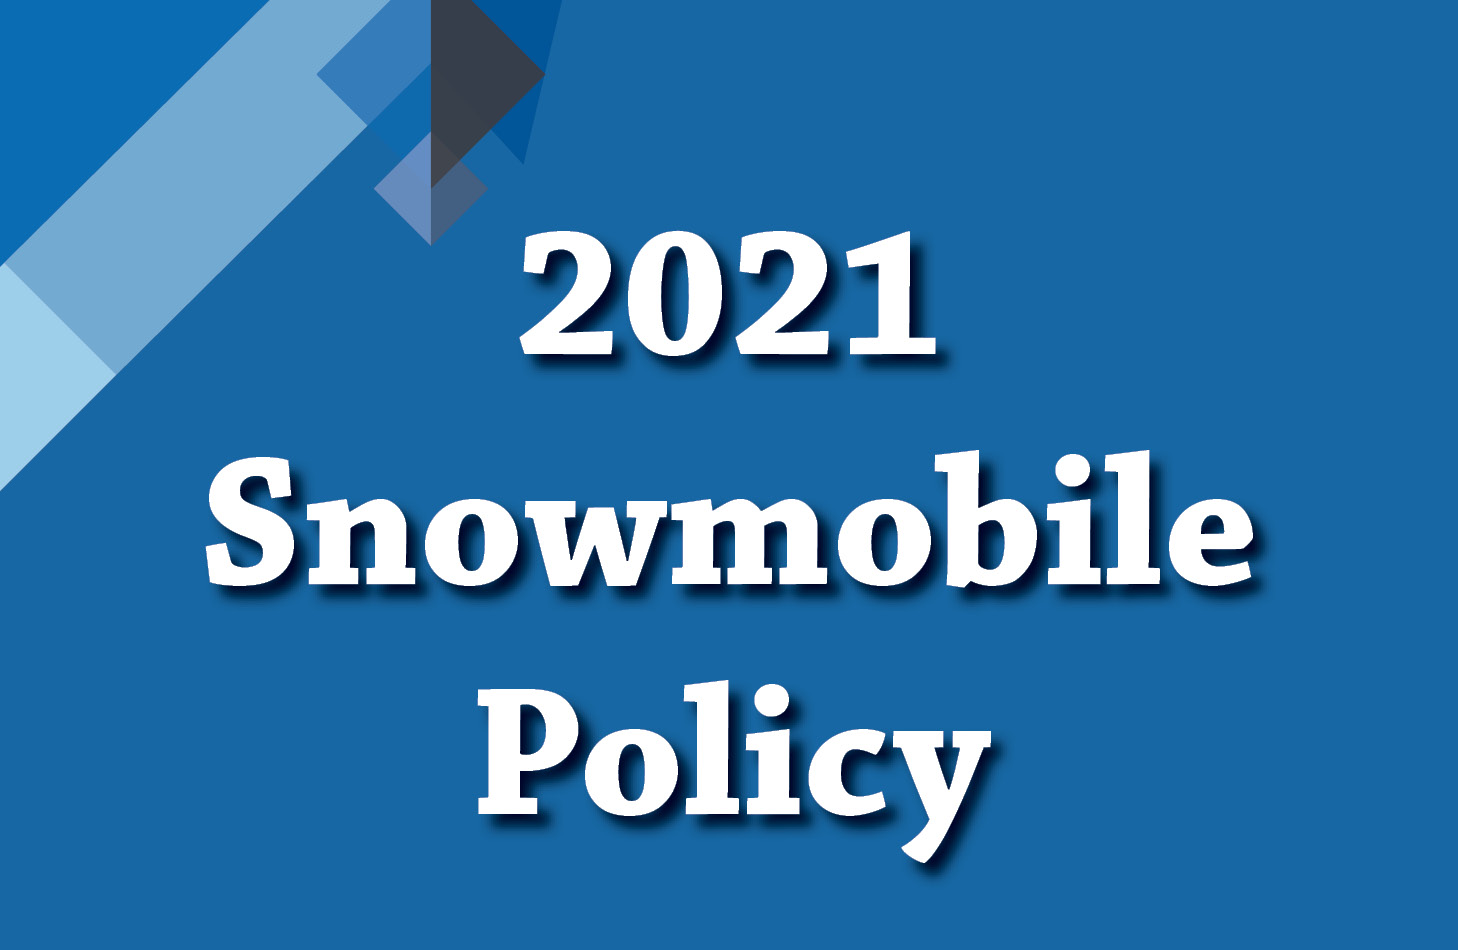 2021 Snowmobile Policy